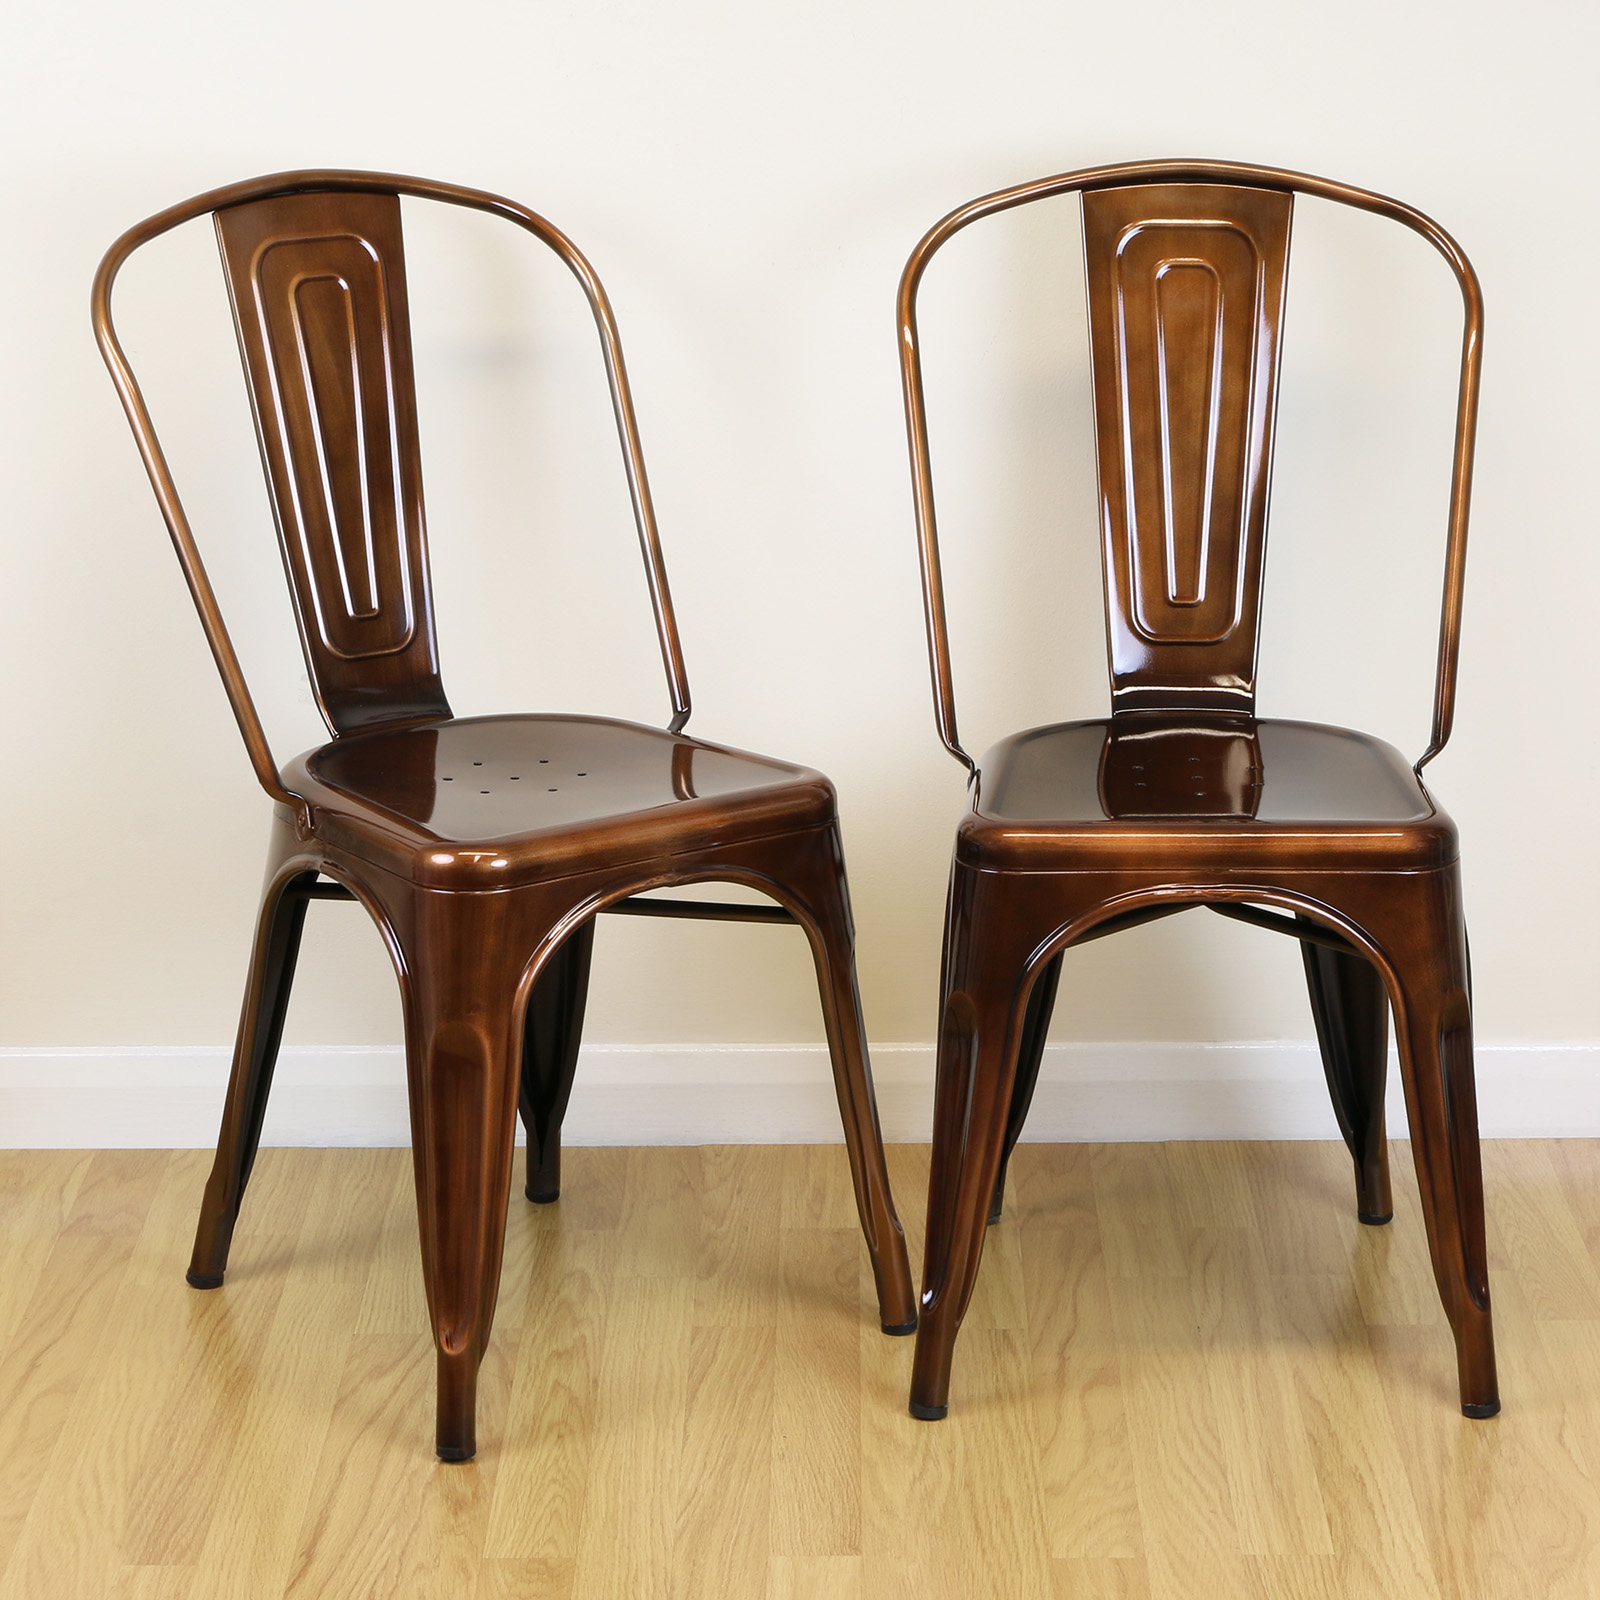 retro cafe dining chairs anthropologie hanging chair set of 2 copper metal industrial kitchen